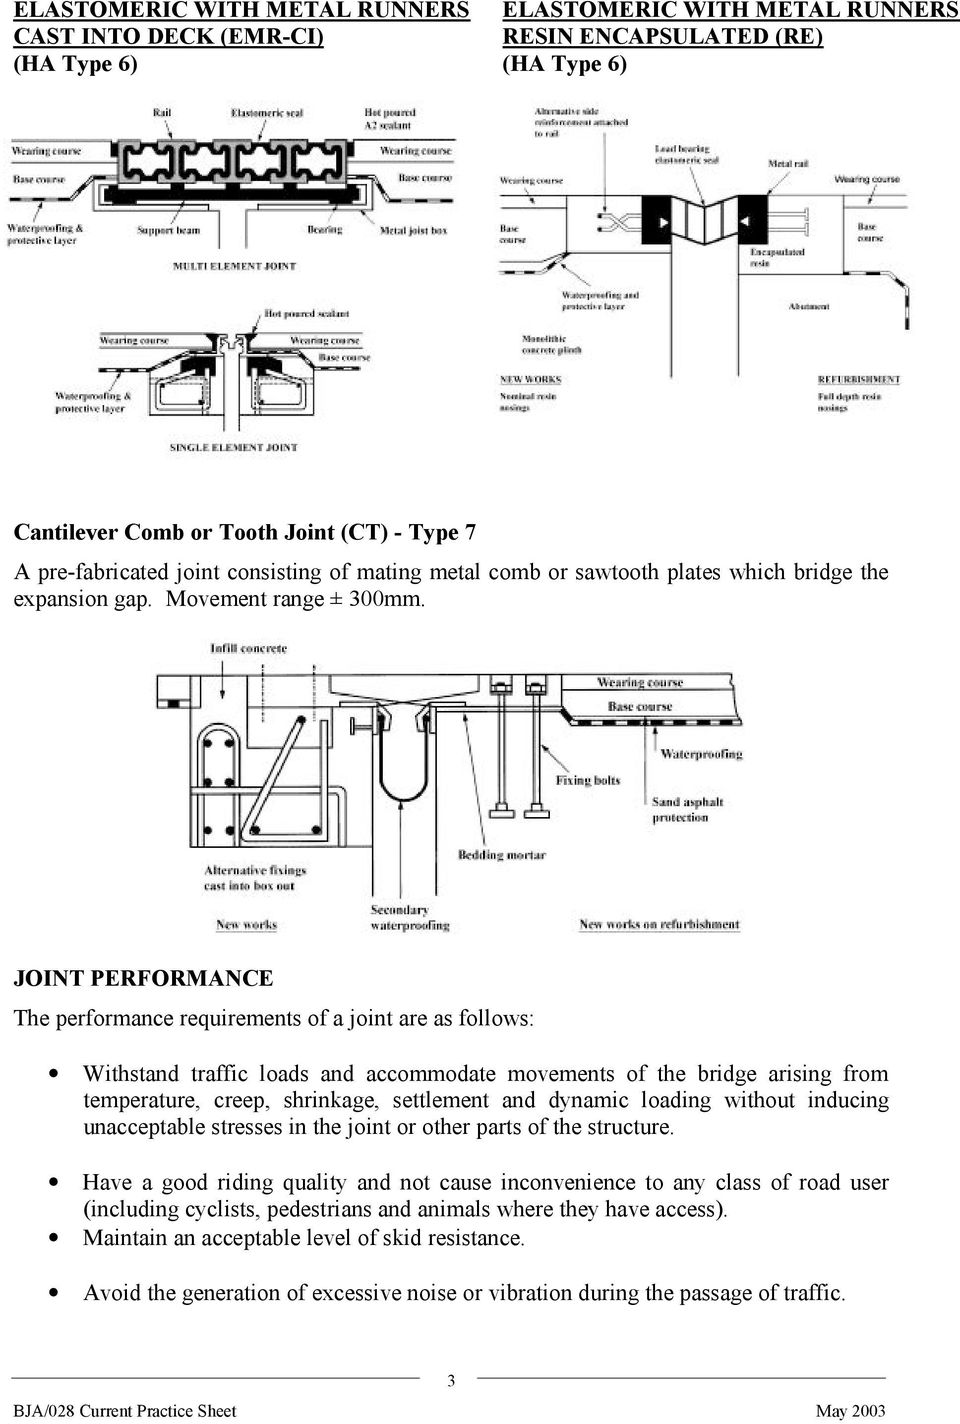 JOINT PERFORMANCE The performance requirements of a joint are as follows: Withstand traffic loads and accommodate movements of the bridge arising from temperature, creep, shrinkage, settlement and